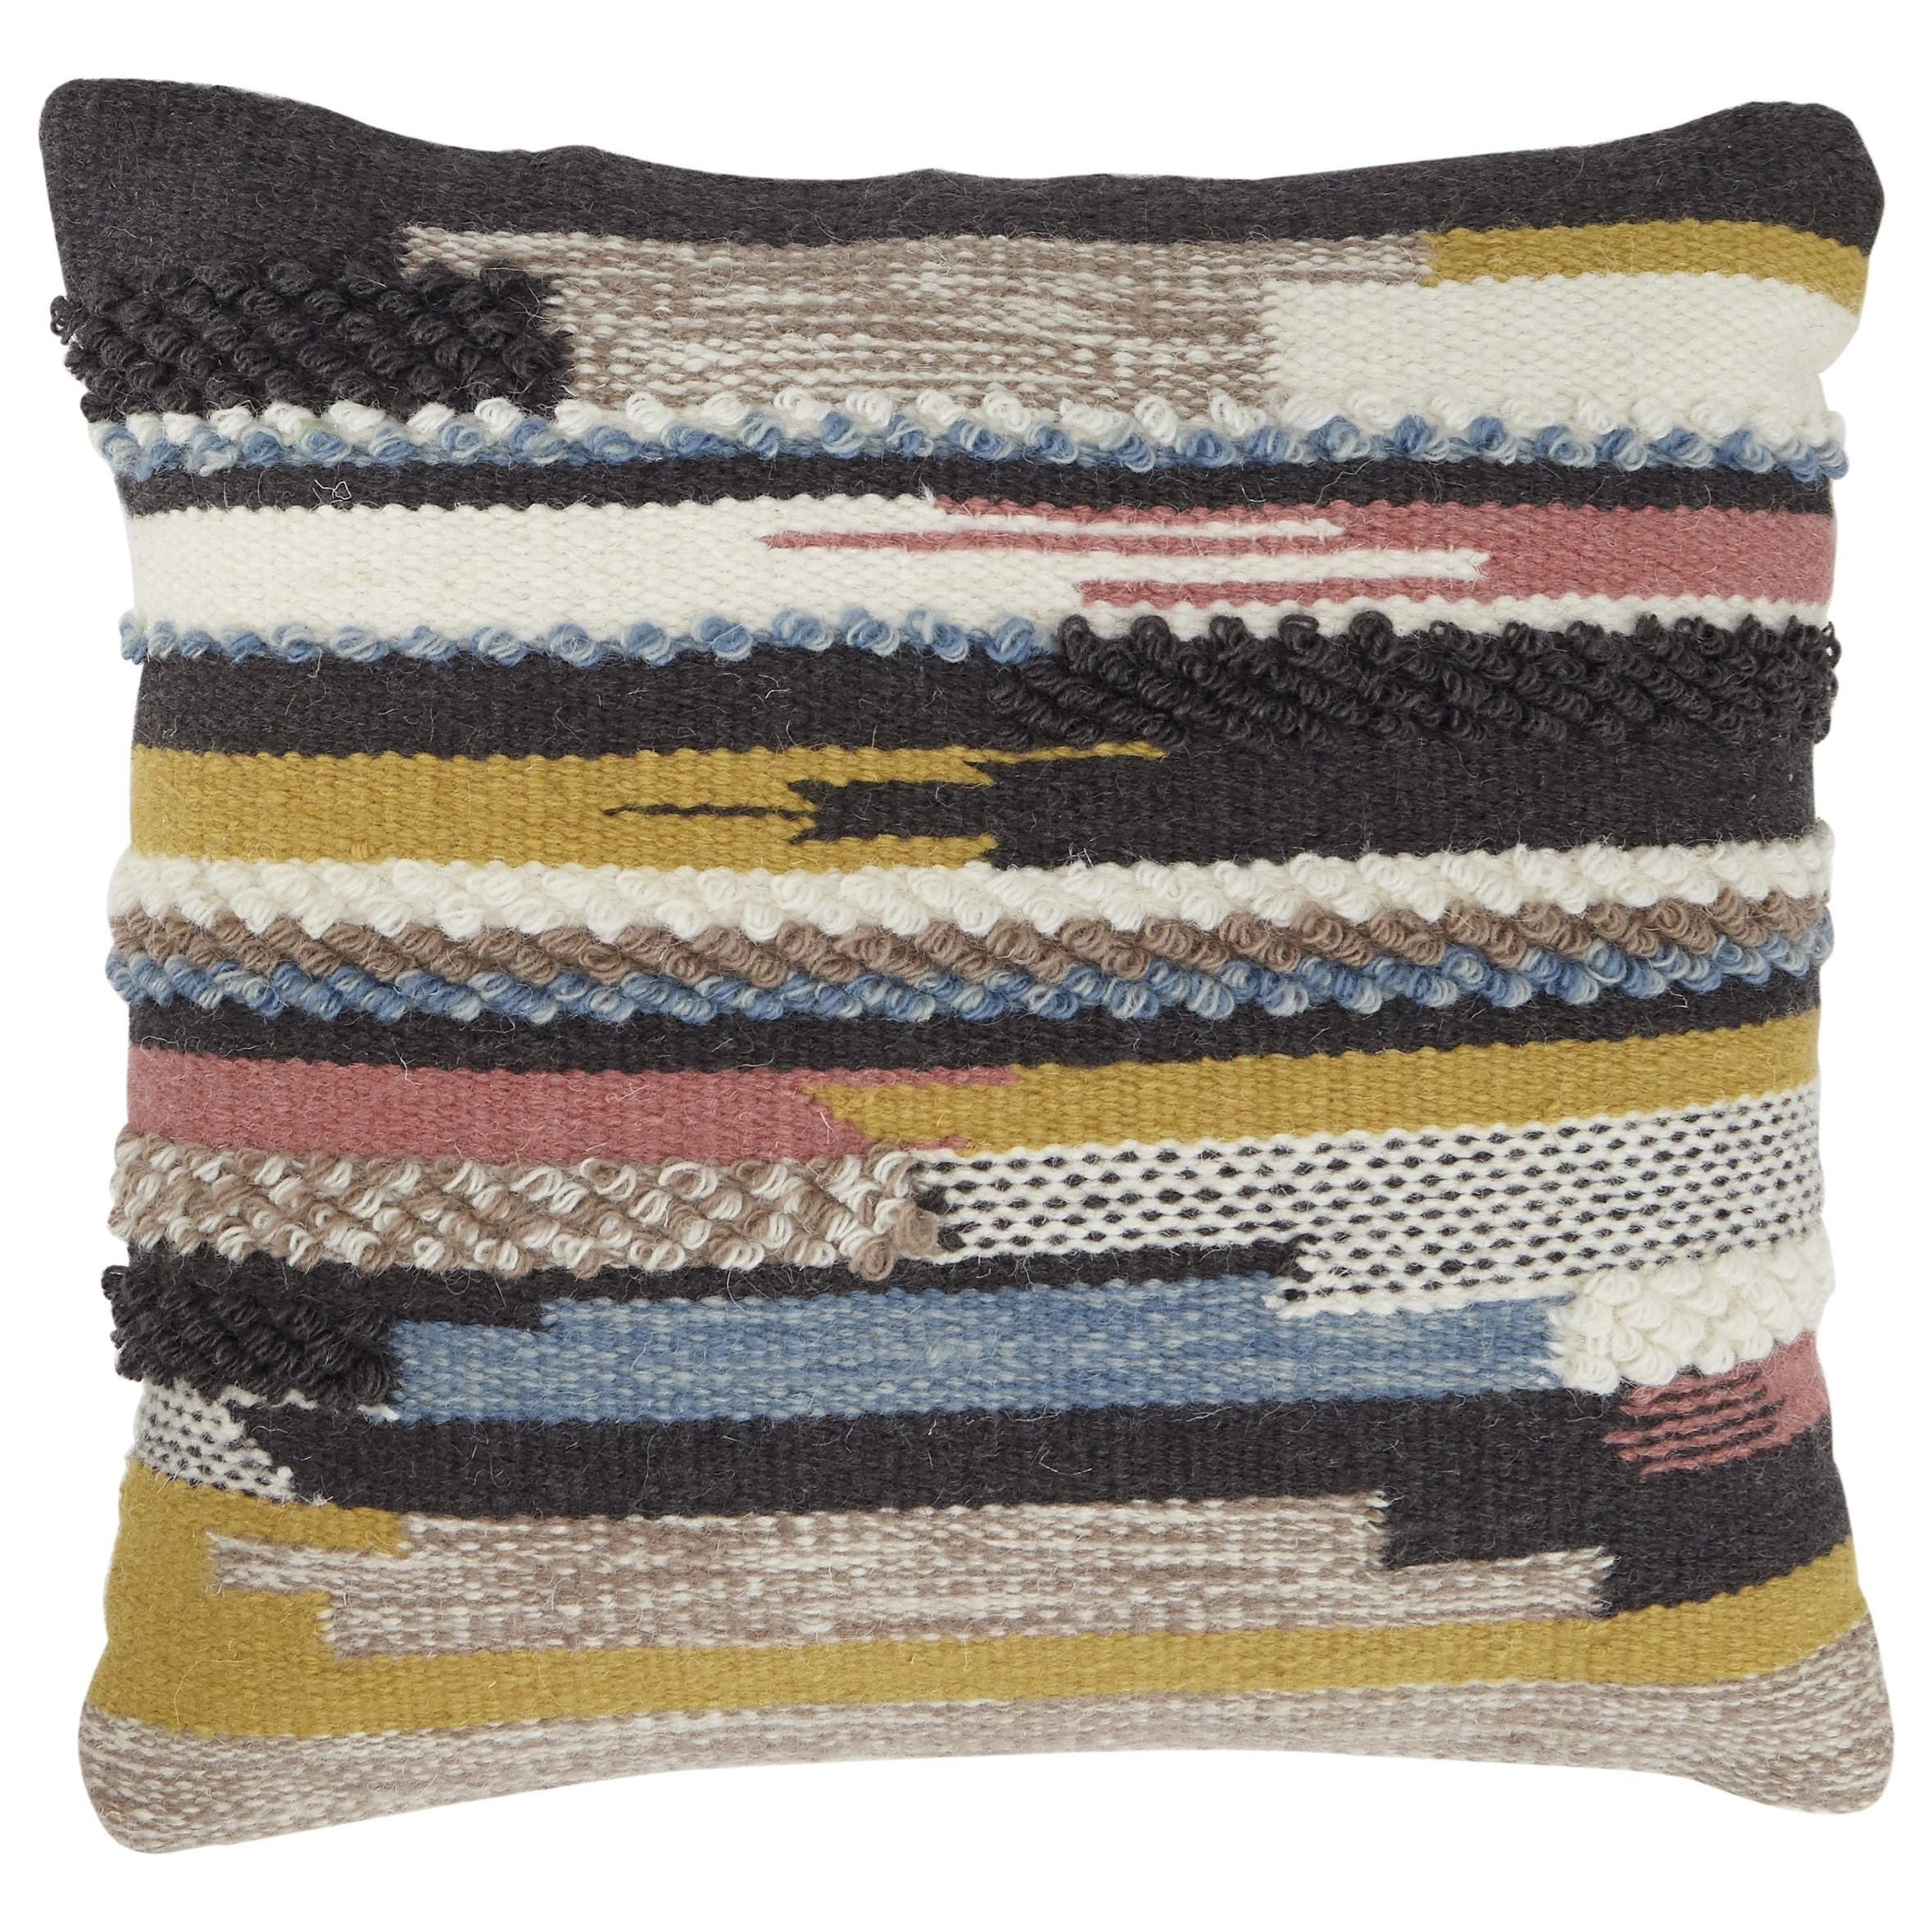 Signature Design by Ashley Pillows Rayford Multi Pillow - Item Number: A1000823P